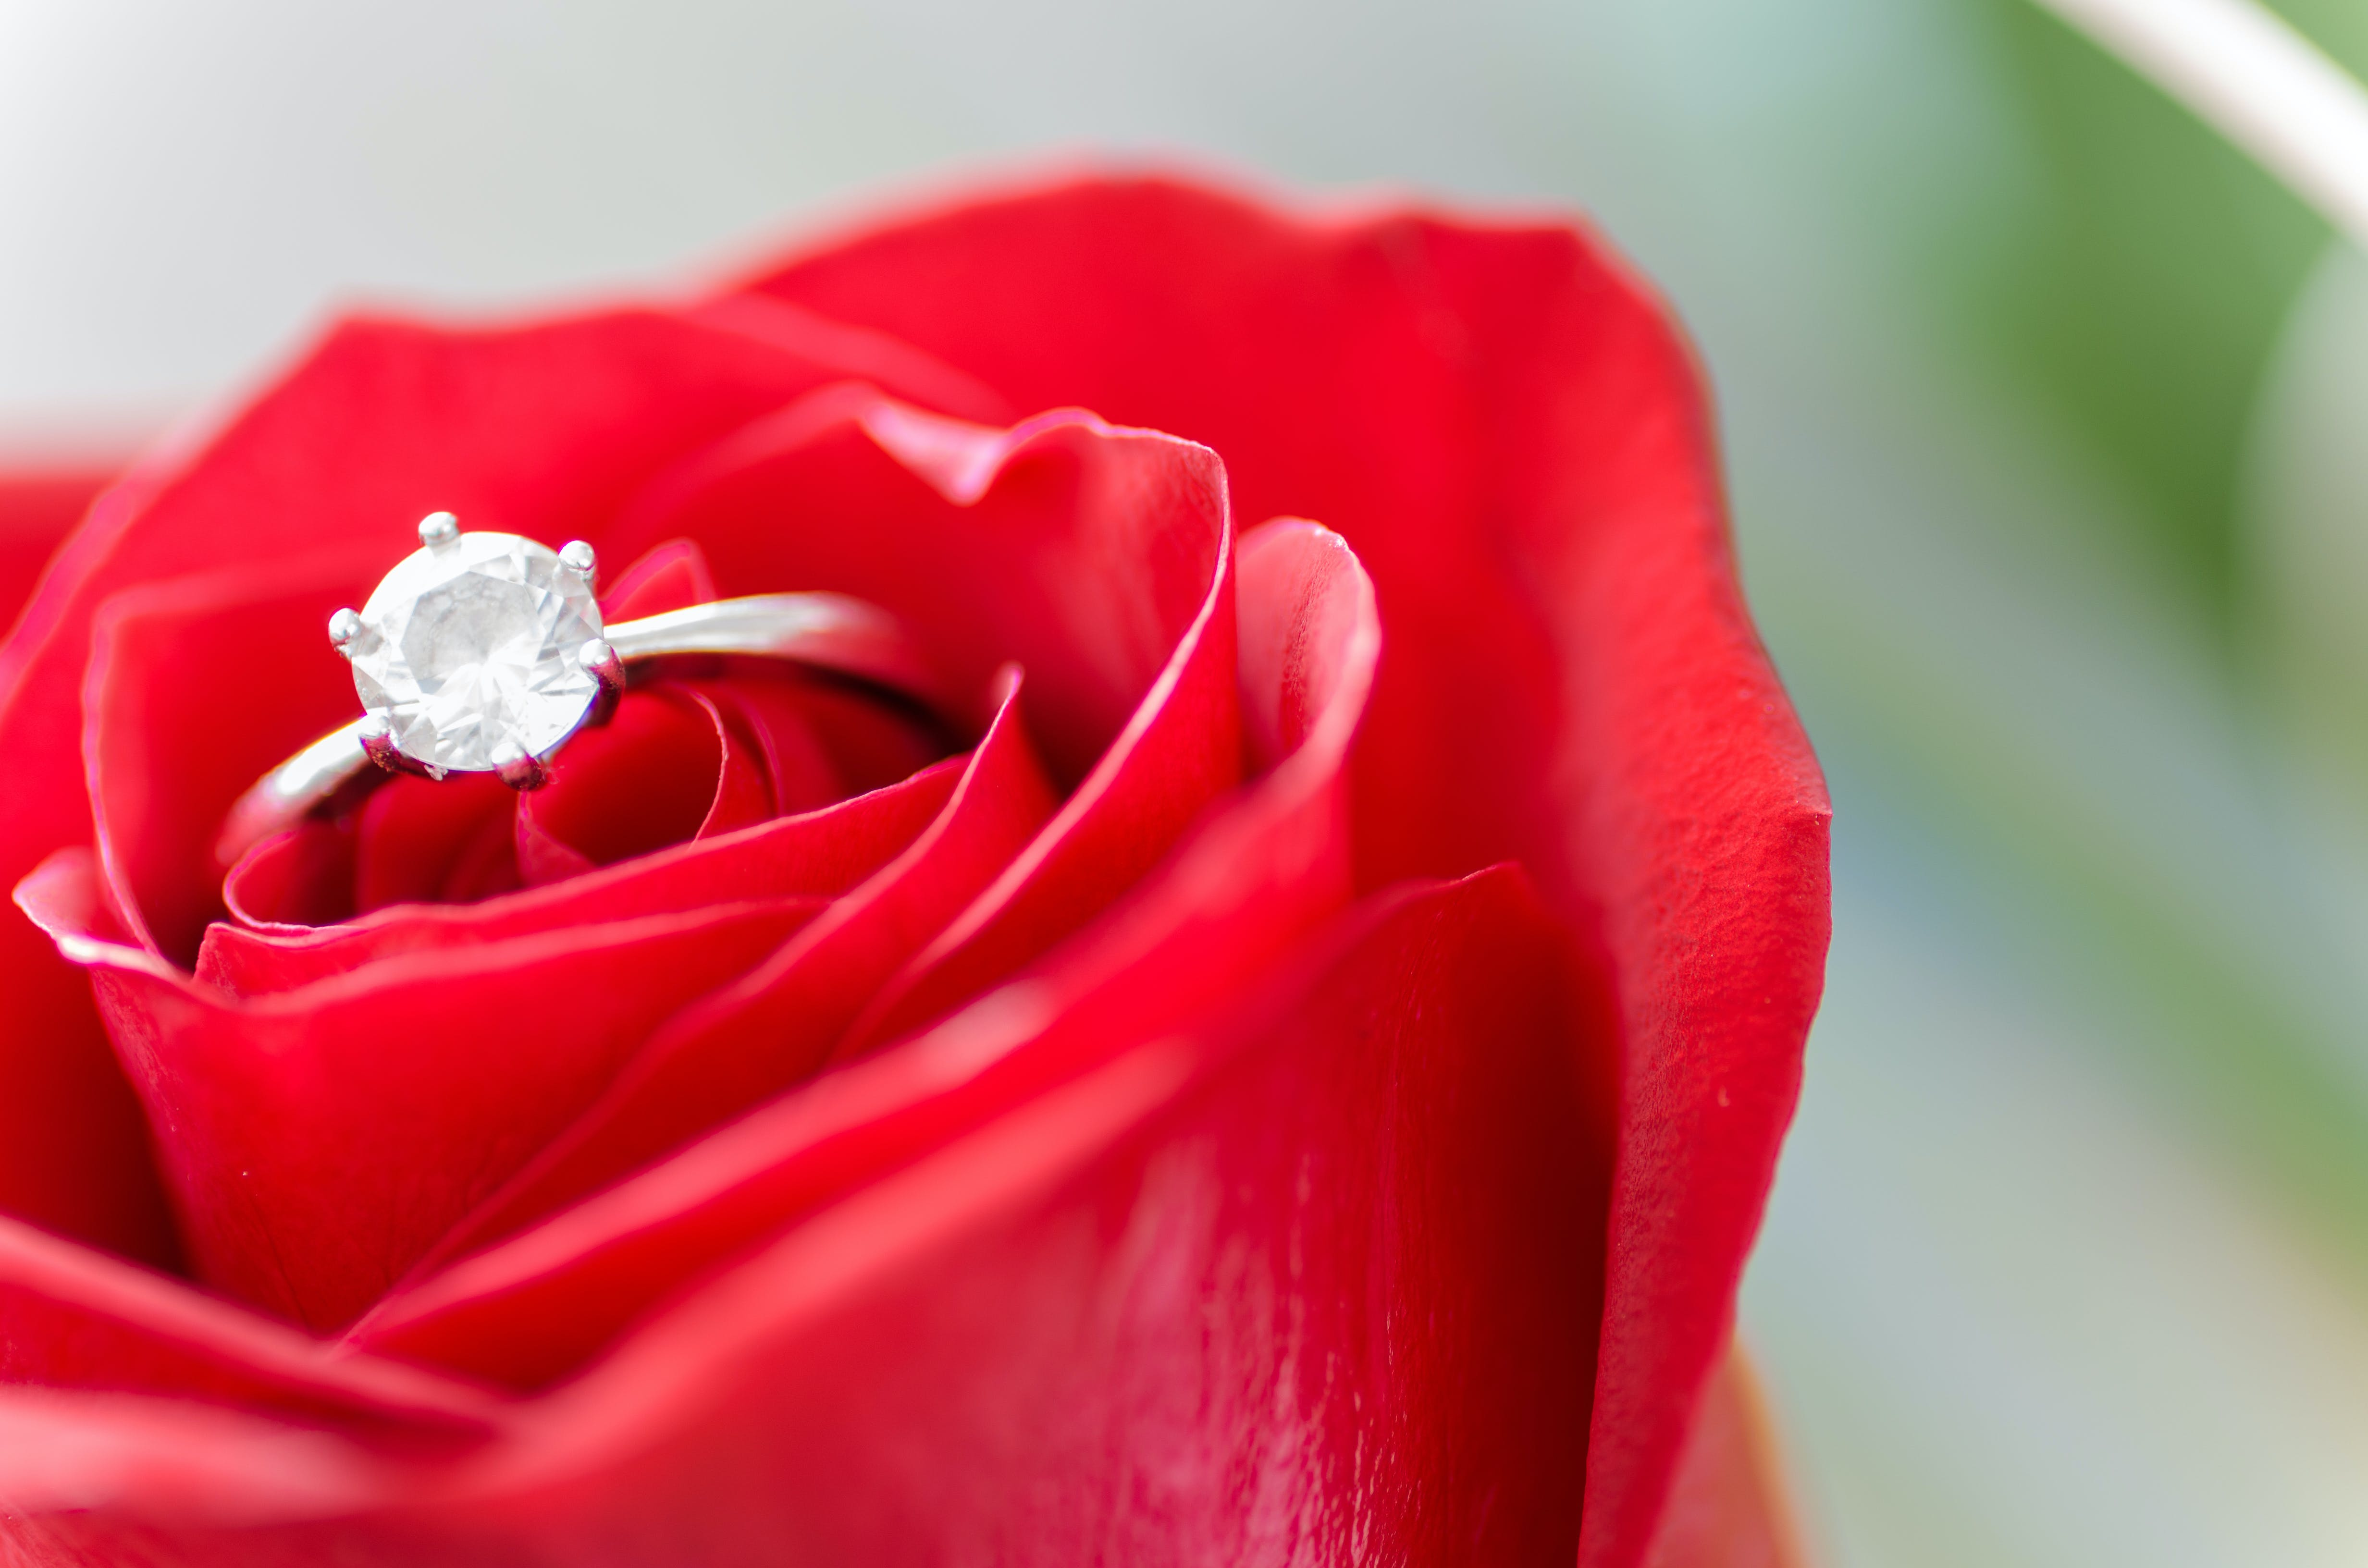 Silver-colored Ring in Rose